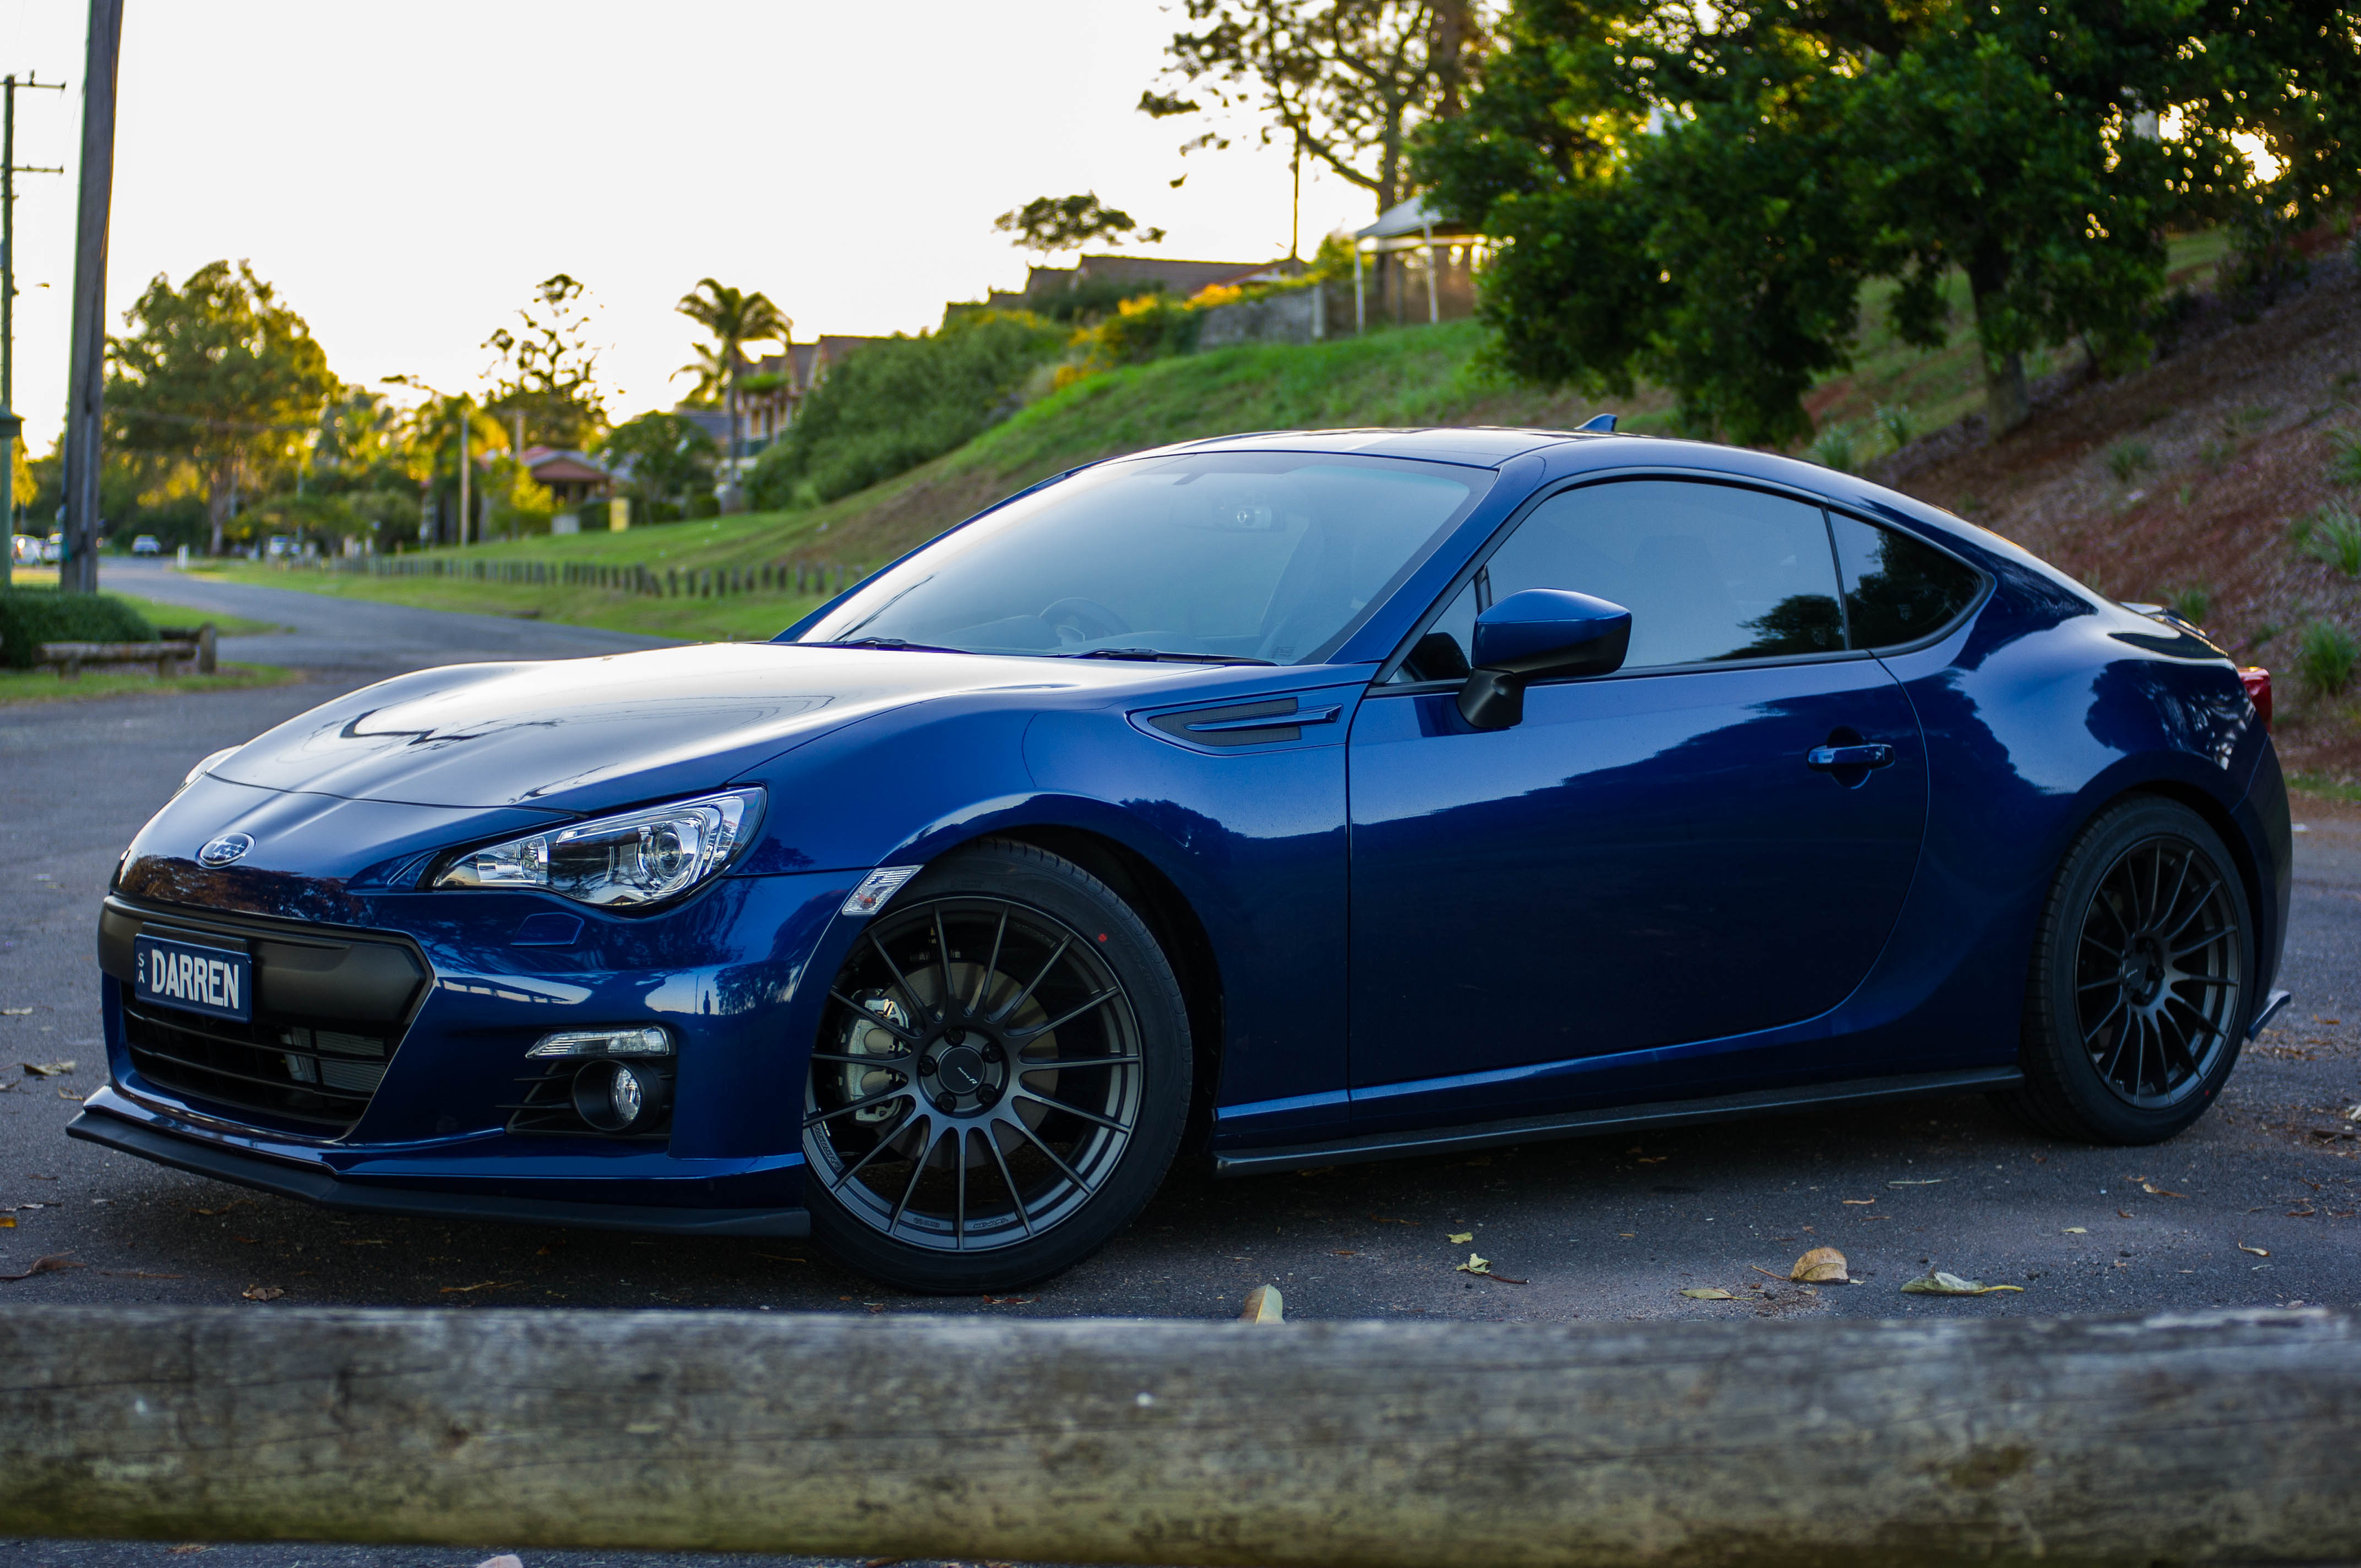 Subaru Brz Custom Wheels Enkei Rs05rr 18x8 5 Et 42 Tire